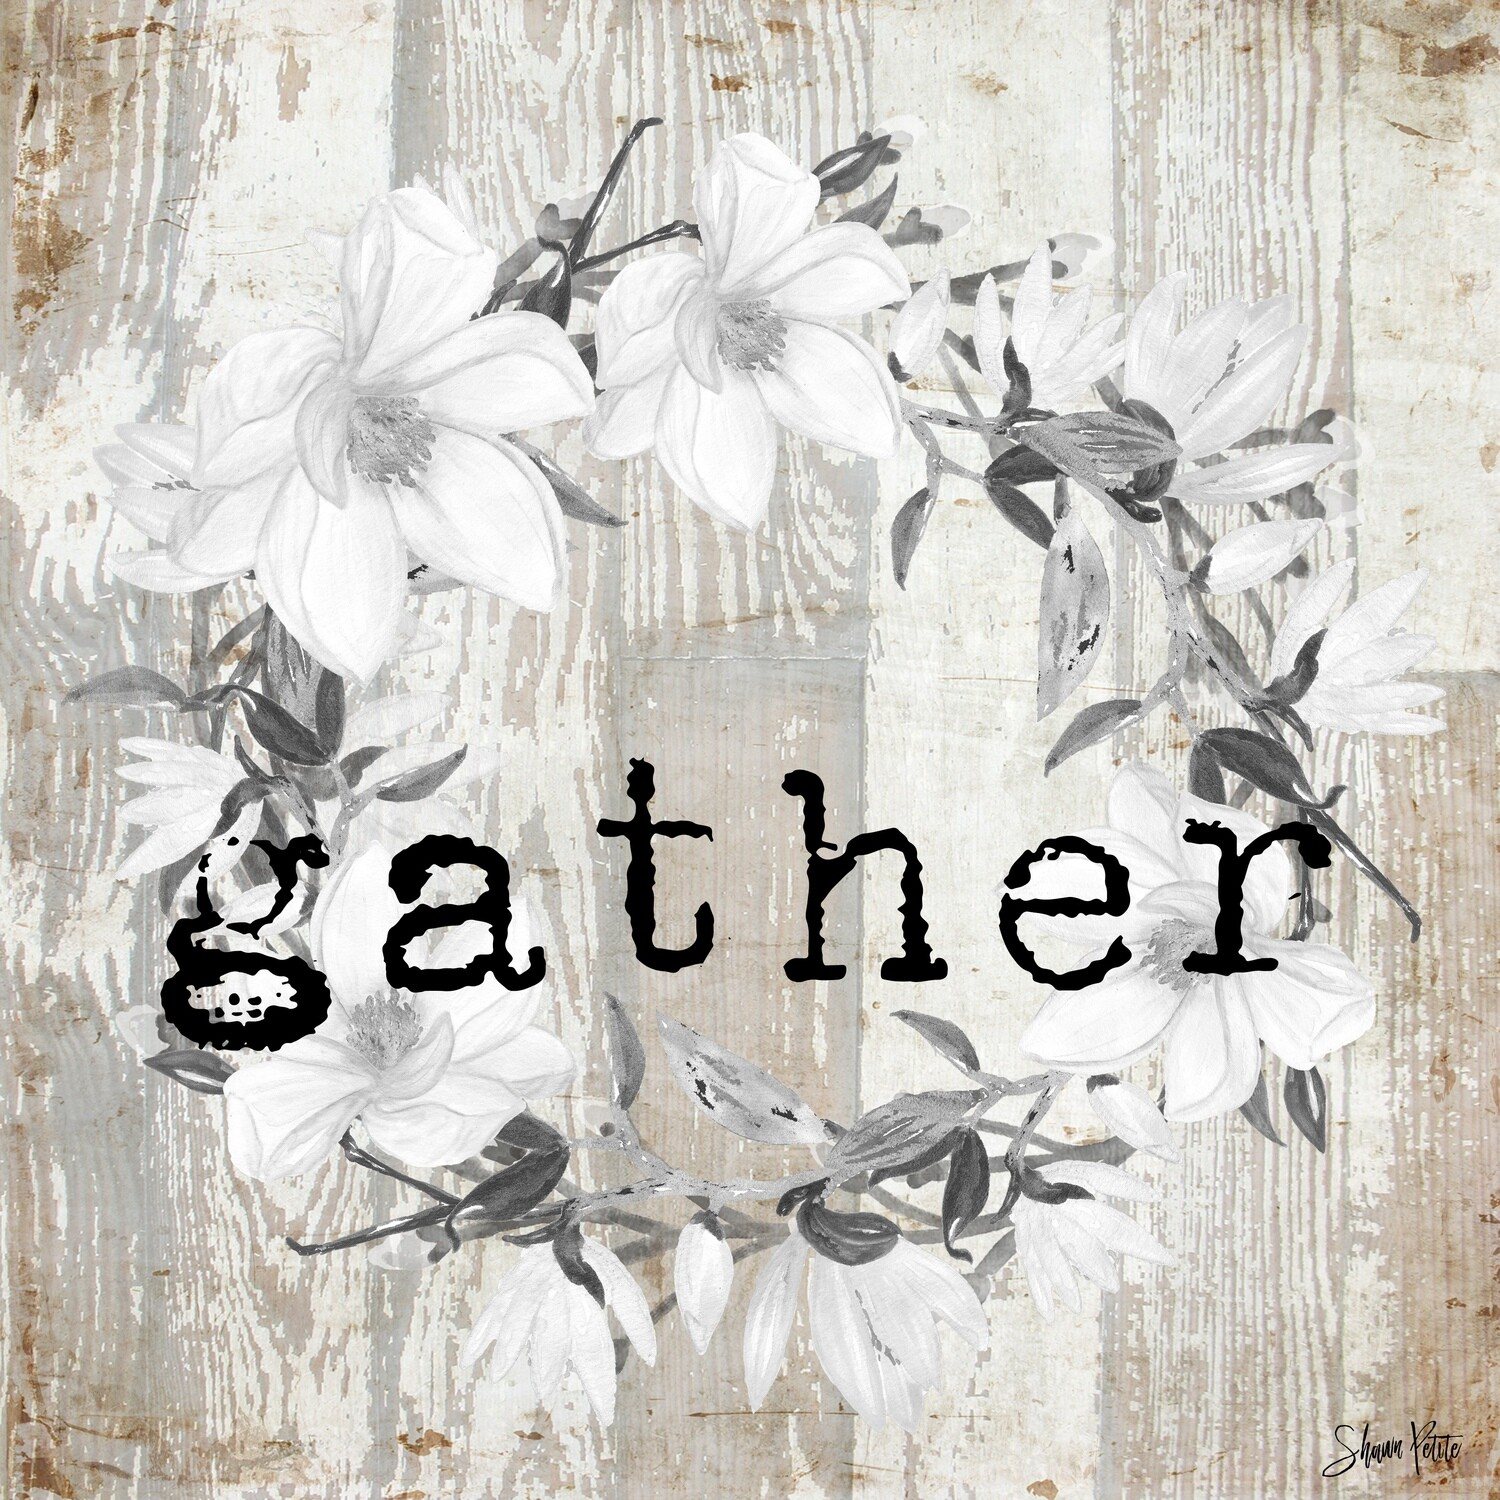 """""""Gather white wreath"""" print on Wood 4x4 Overstock"""